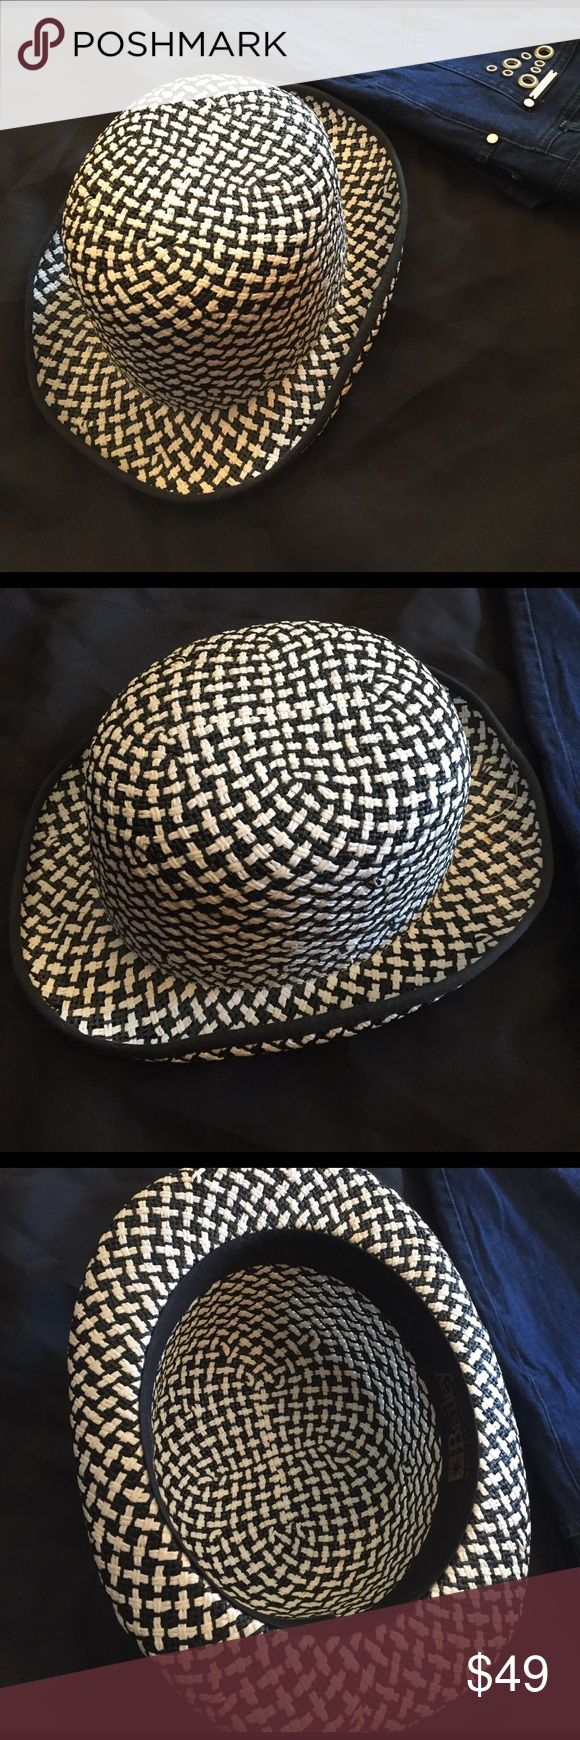 💕. Bailey hat 🎩. Must have. Awesome This is adorable more pics pls ask. 💕 used smoke free home. Excellent condition Bailey 44 Accessories Hats